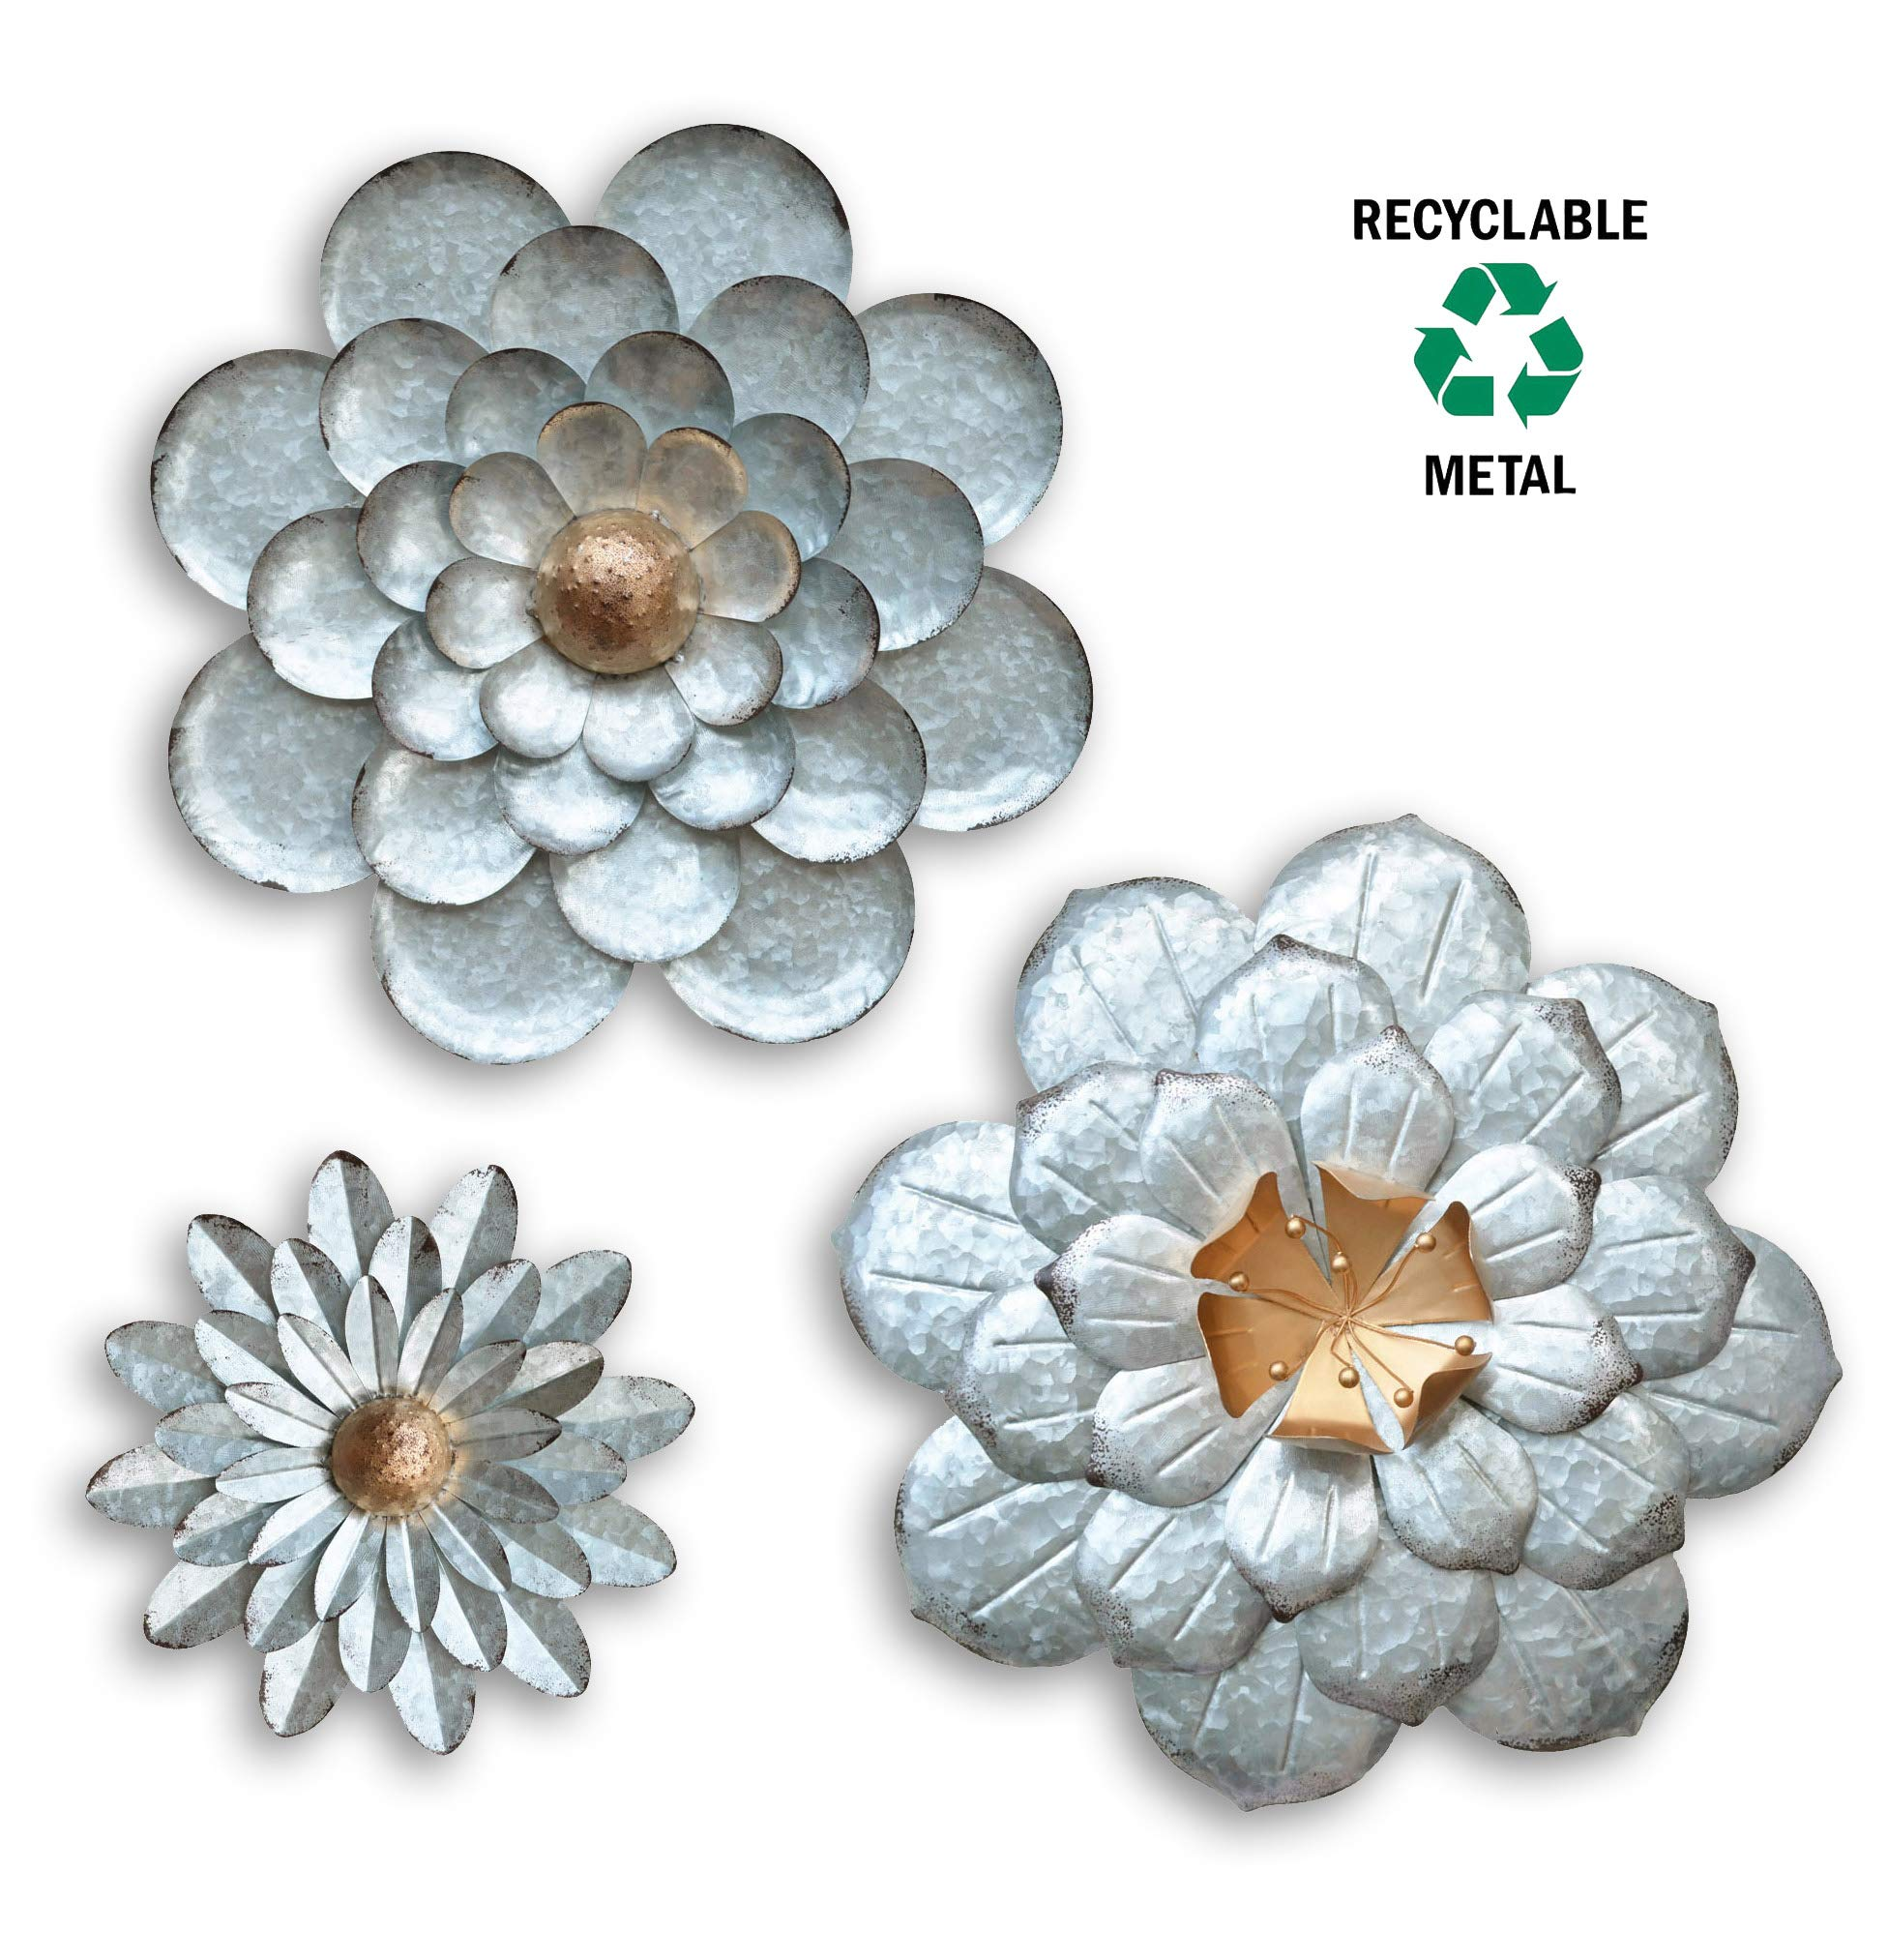 GIFTME 5 Galvanized Flowers Wall Decor Set of 3 Metal Flower Wall Art by GIFTME 5